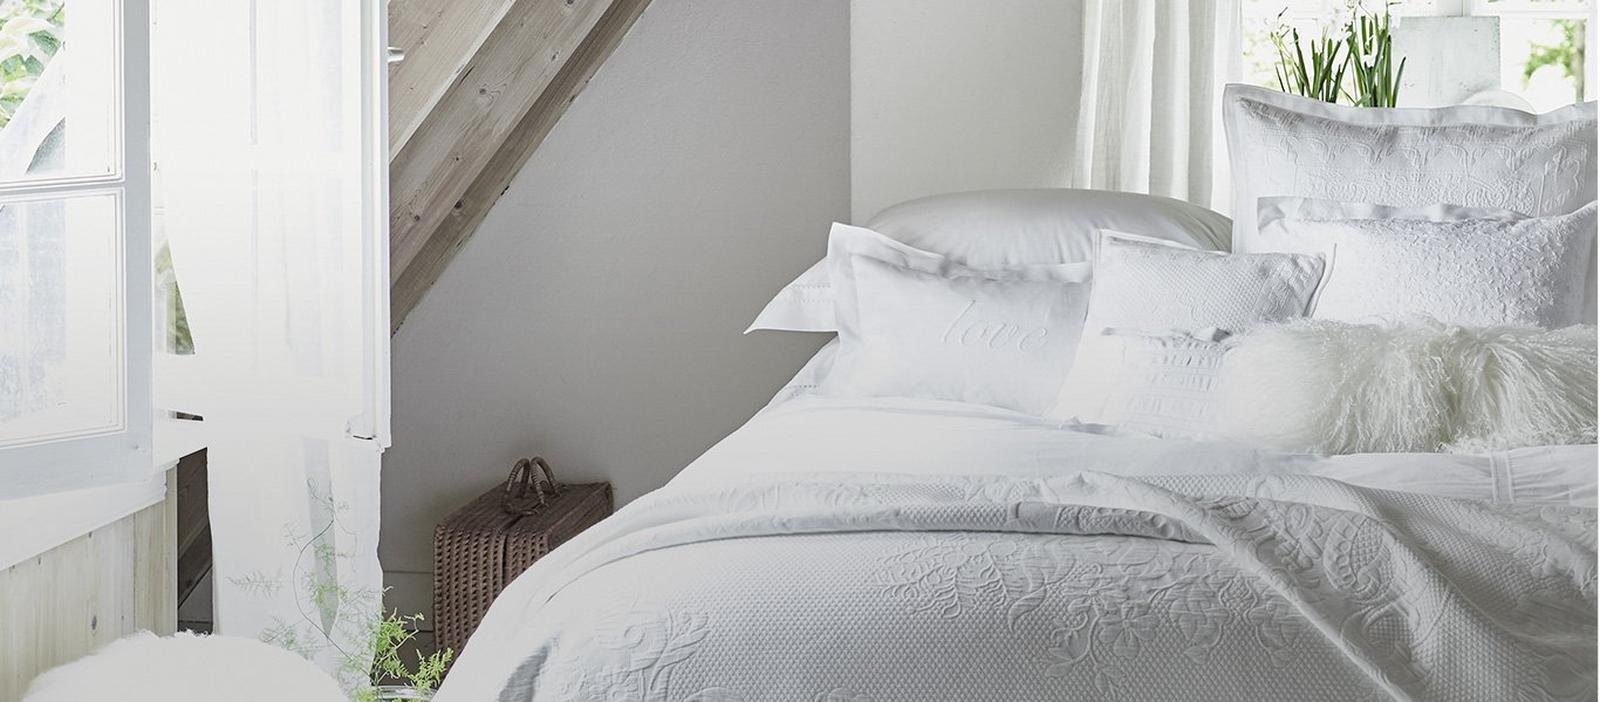 Bed Cover Buying Guide   The White Company US